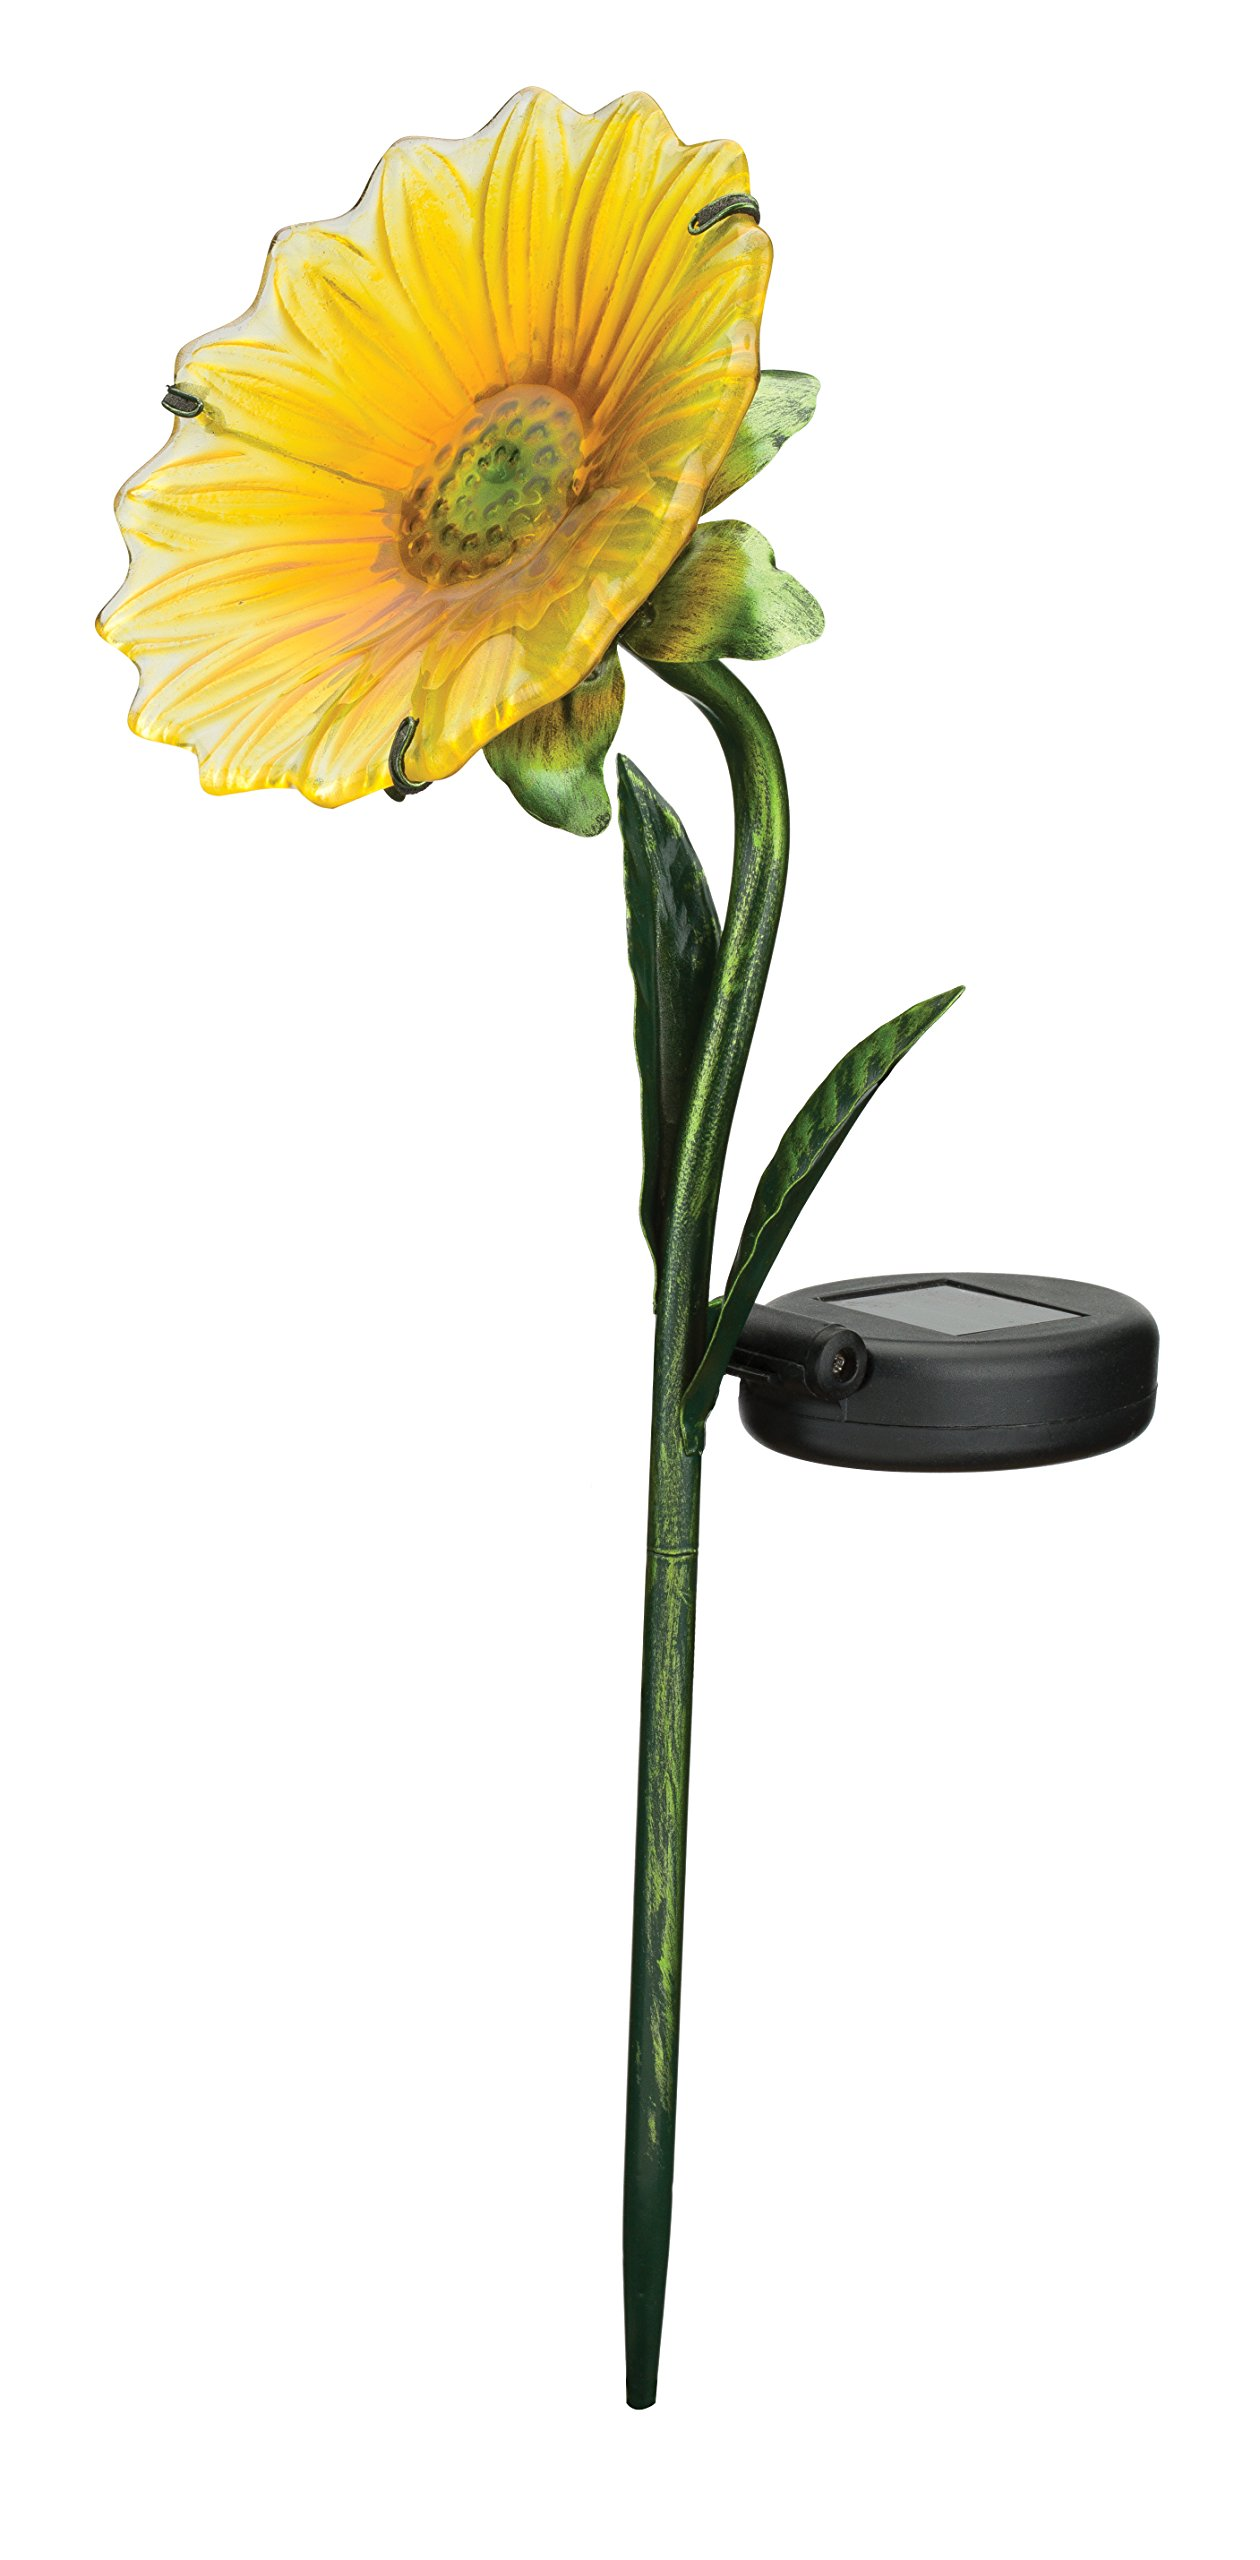 Regal Art & Gift 11638 Mini Daisy Stake Solar Light Garden Decor, Yellow